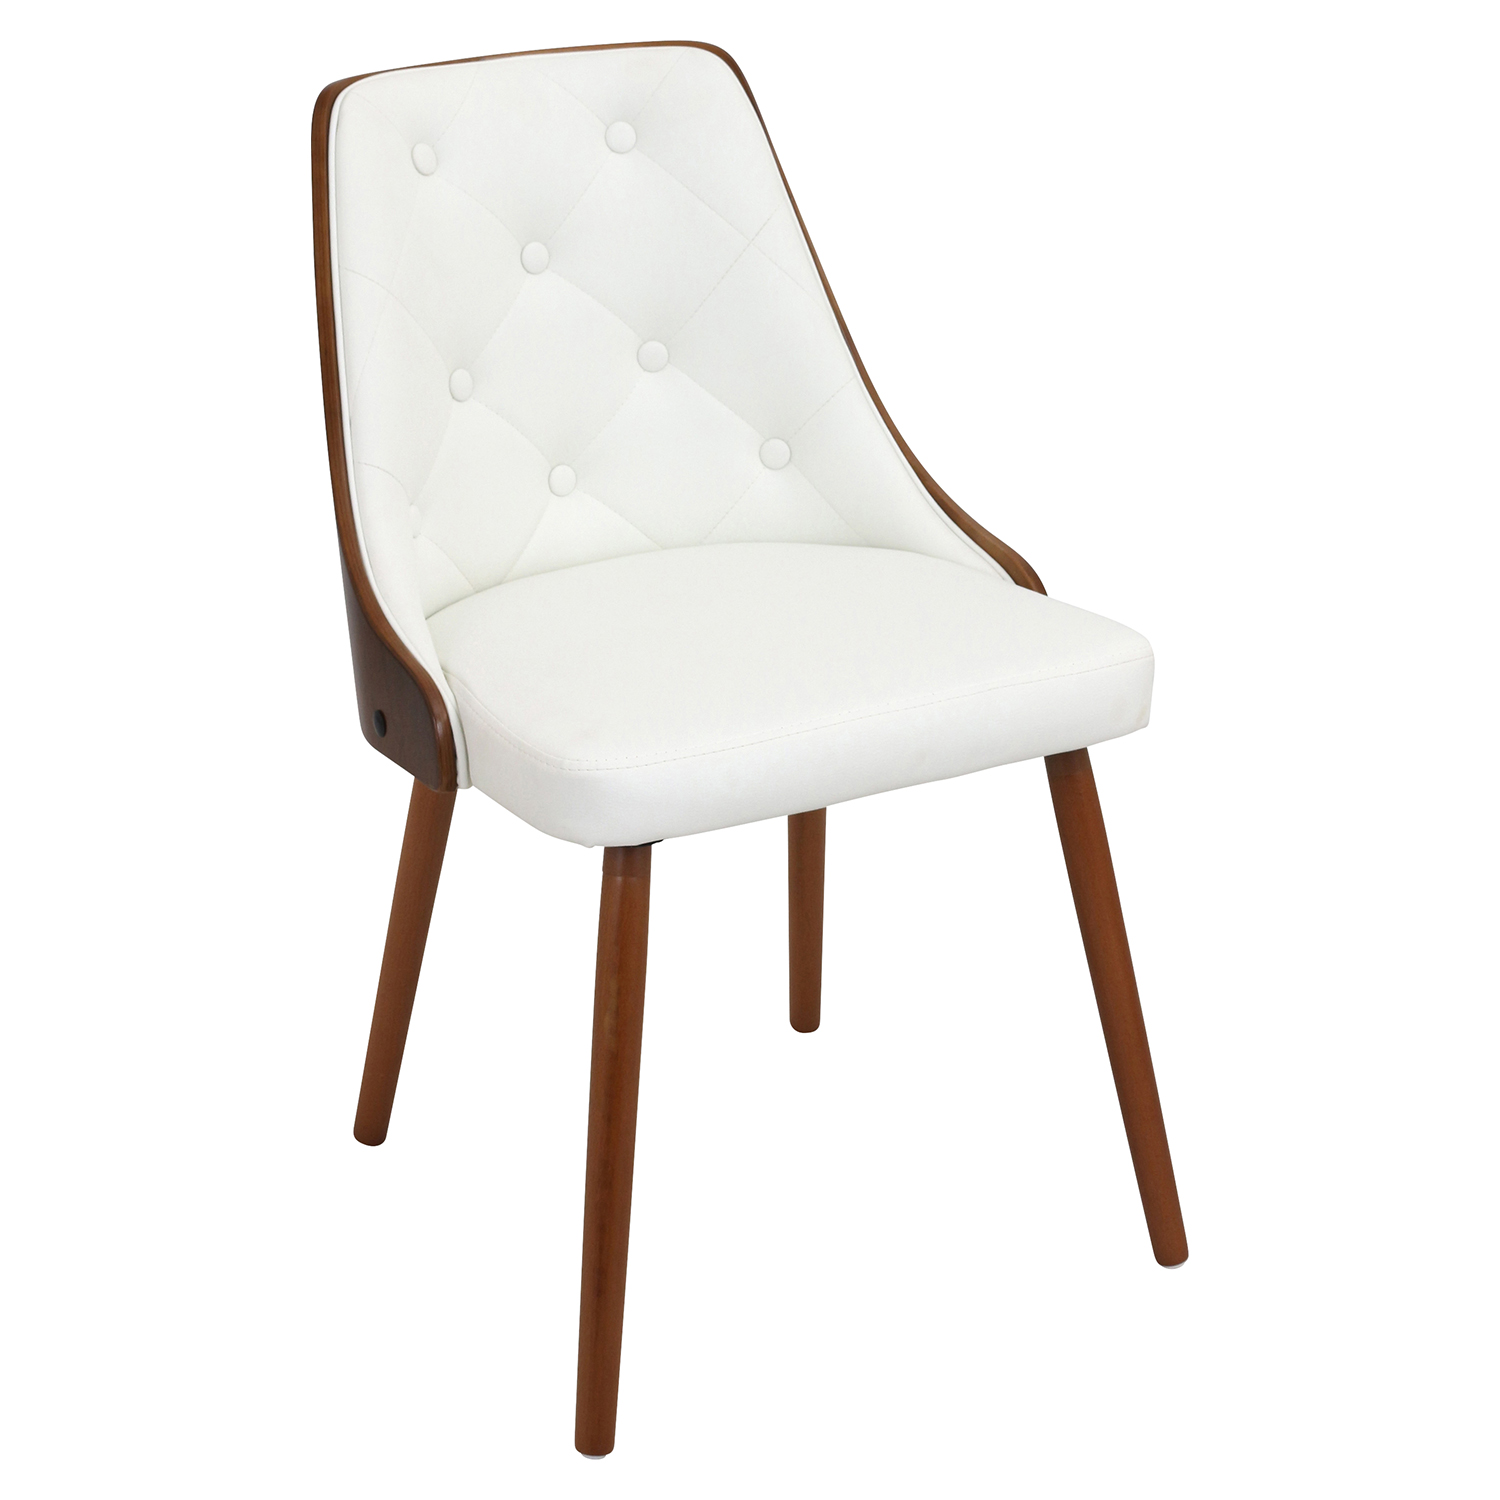 Gianna Dining Chair - White, Button Tufted